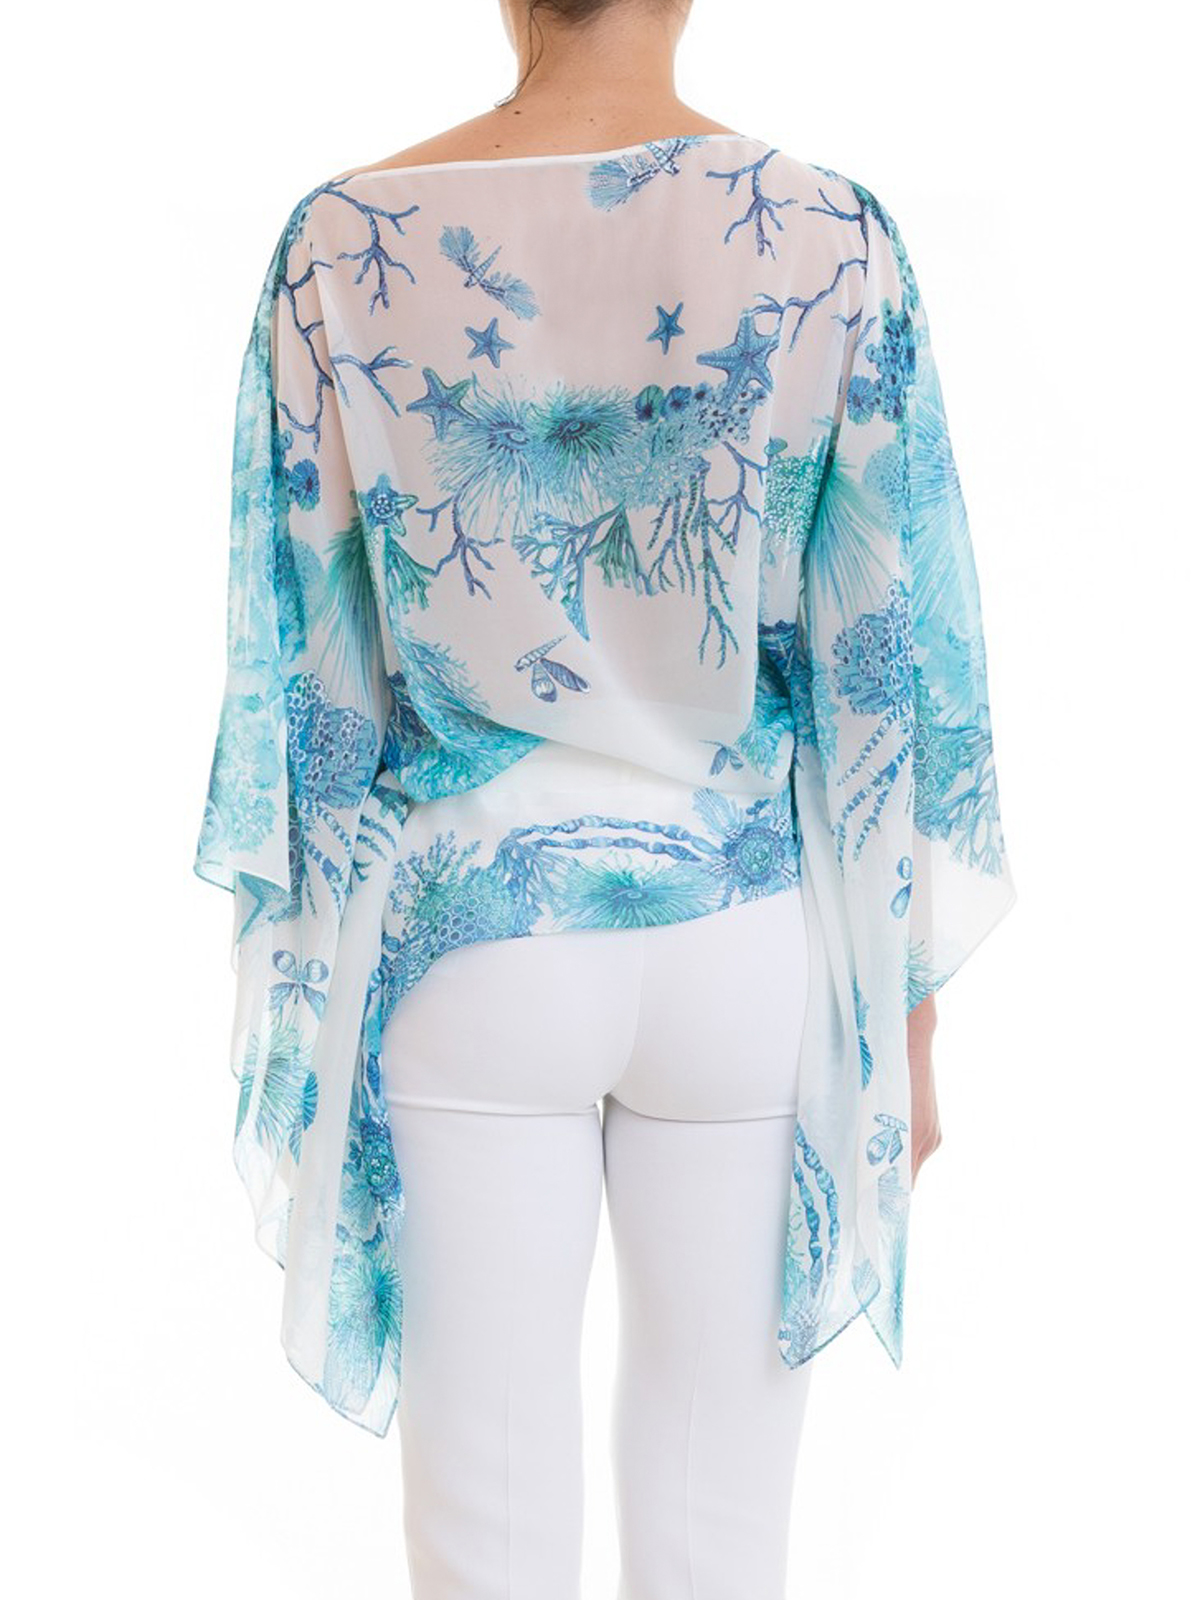 68d30b248ebe5 Roberto Cavalli - Coral Reef light blue silk blouse - blouses ...